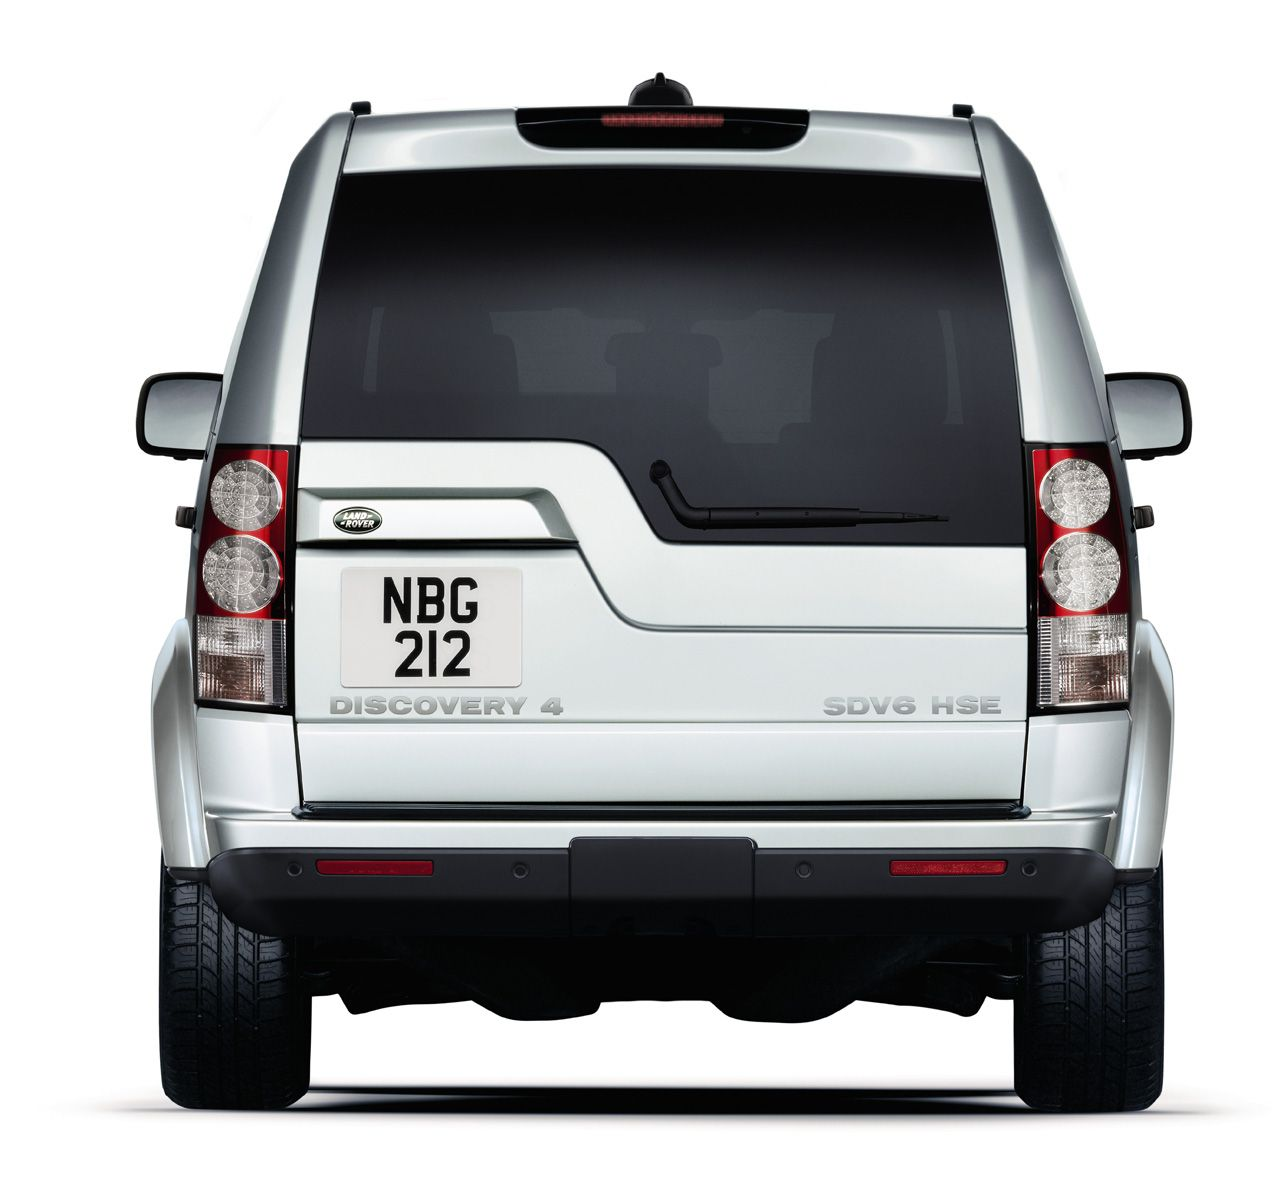 Land Rover Discovery 2x Side Stripes Vinyl Body Decal Sticker Graphics Emblem Logo Land Rover Land Rover Discovery Land Rover Discovery Hse [ 905 x 1200 Pixel ]